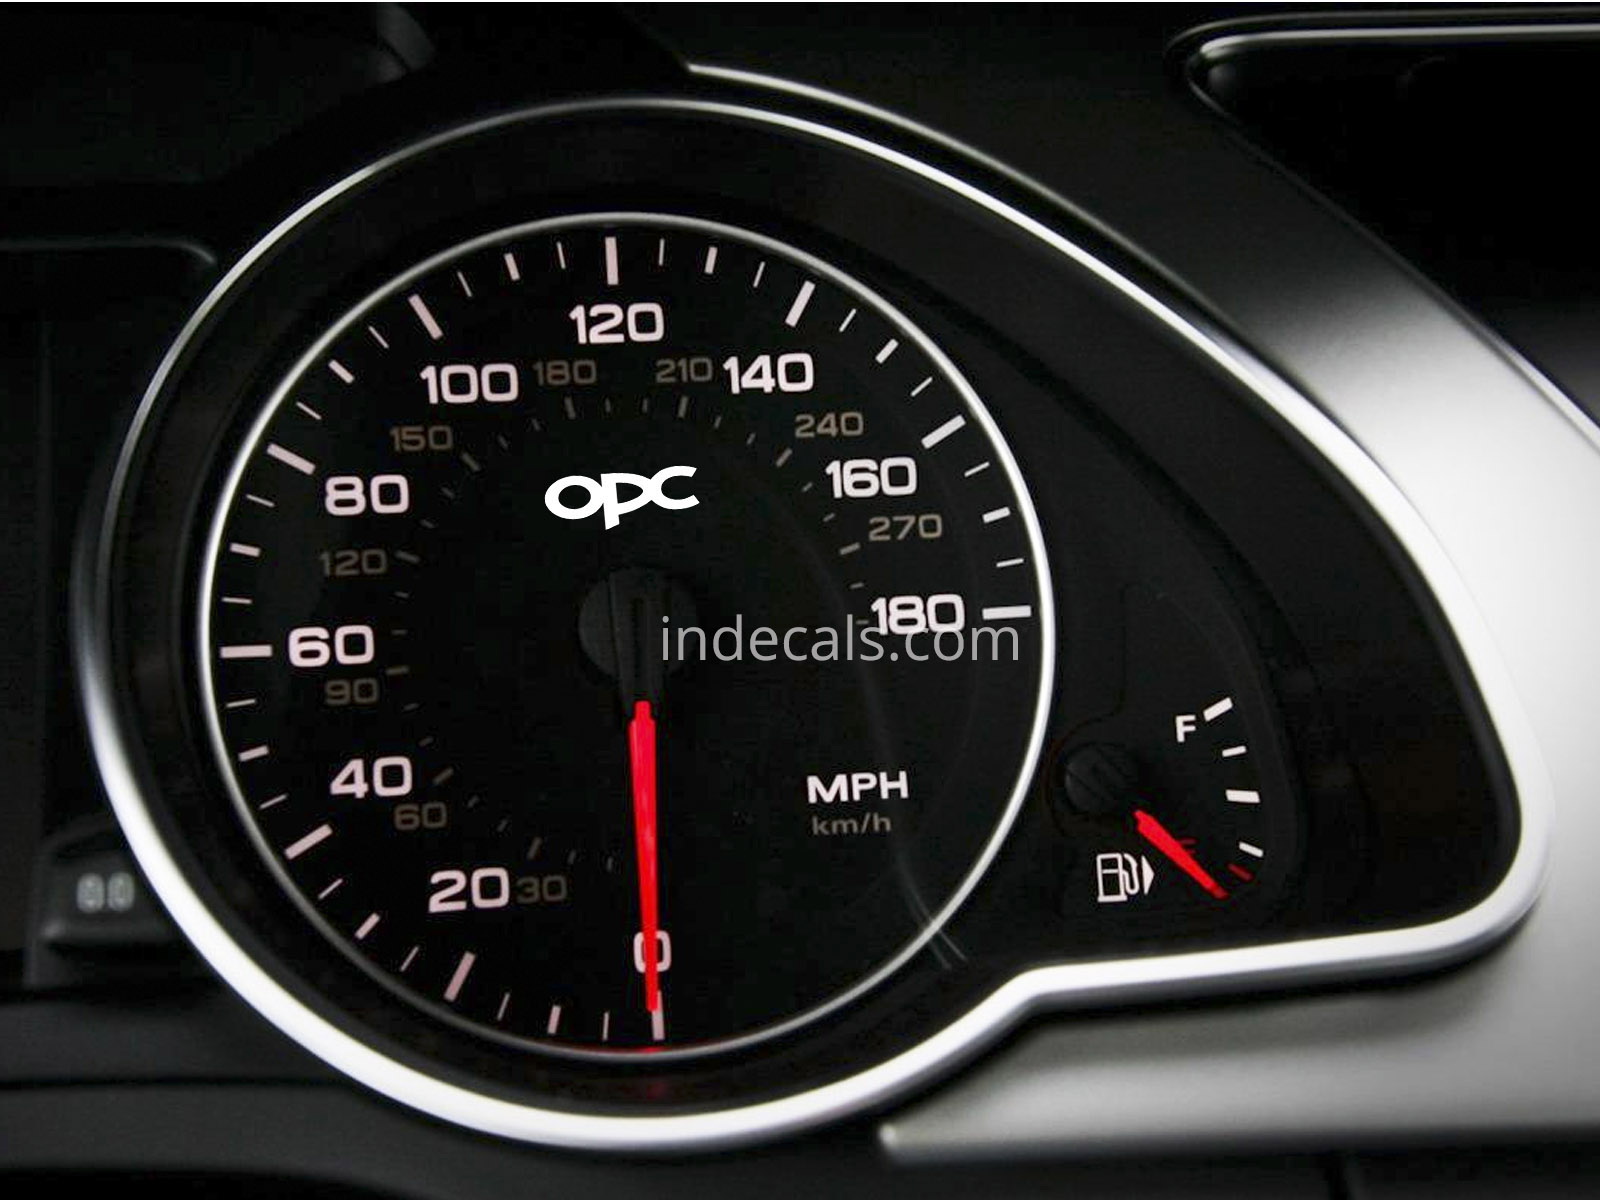 3 x Opel OPC Stickers for Speedometer - White